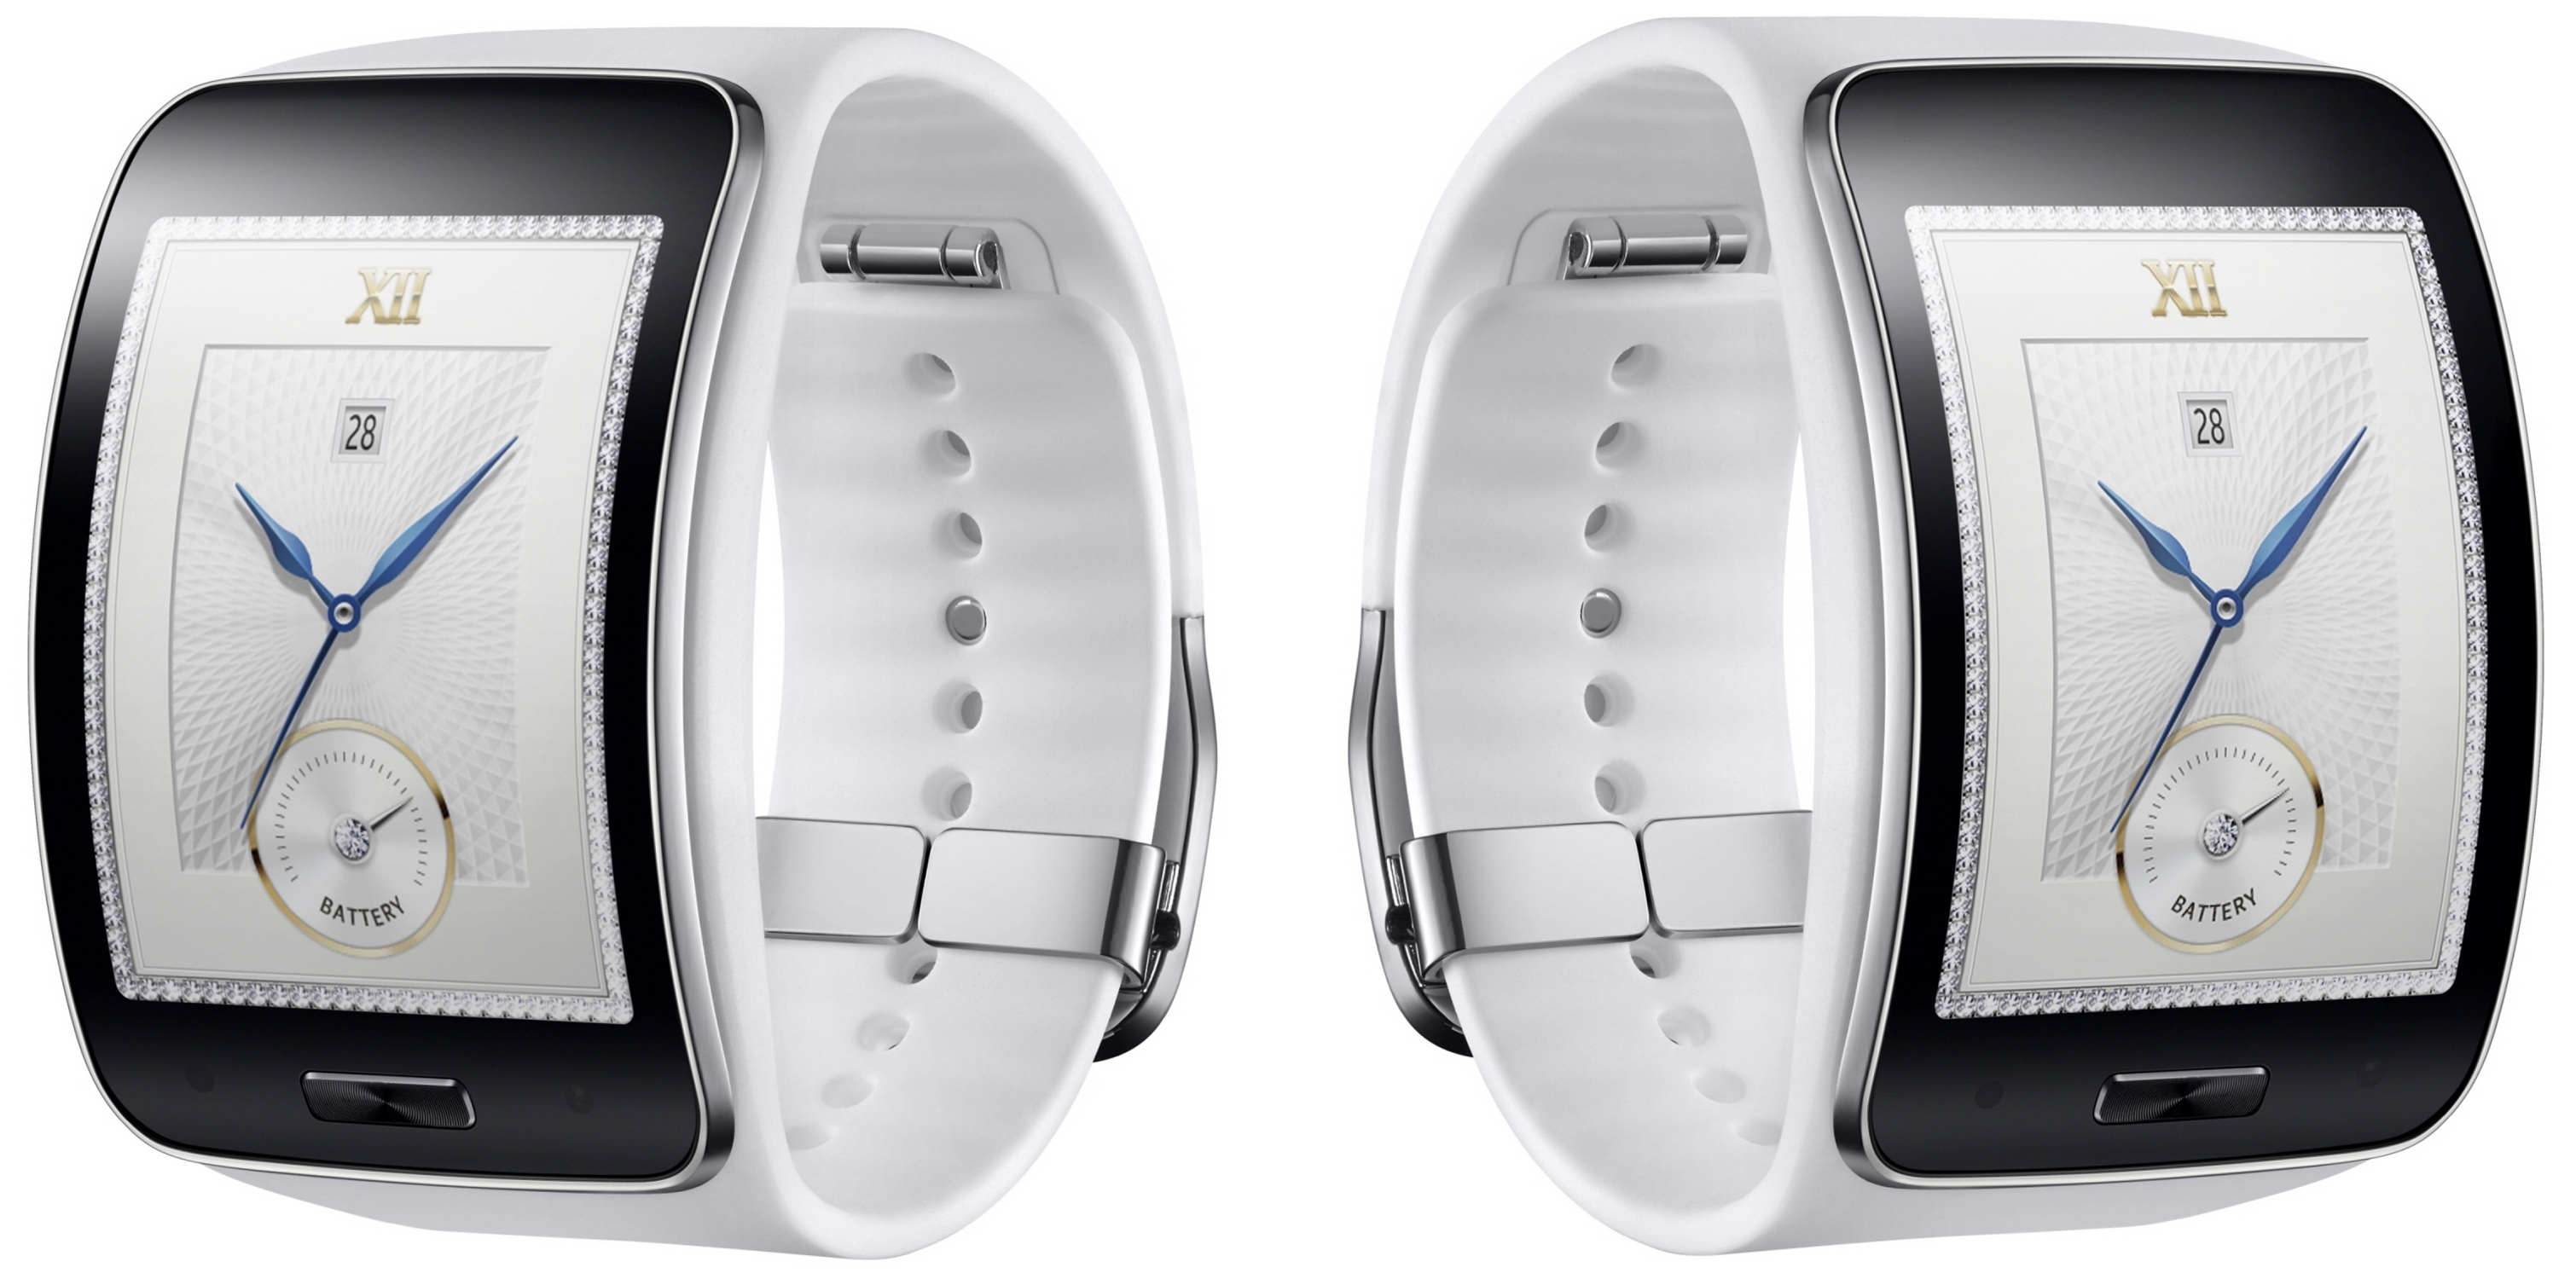 Samsung's new smartwatch, the Gear S, can make calls and ...